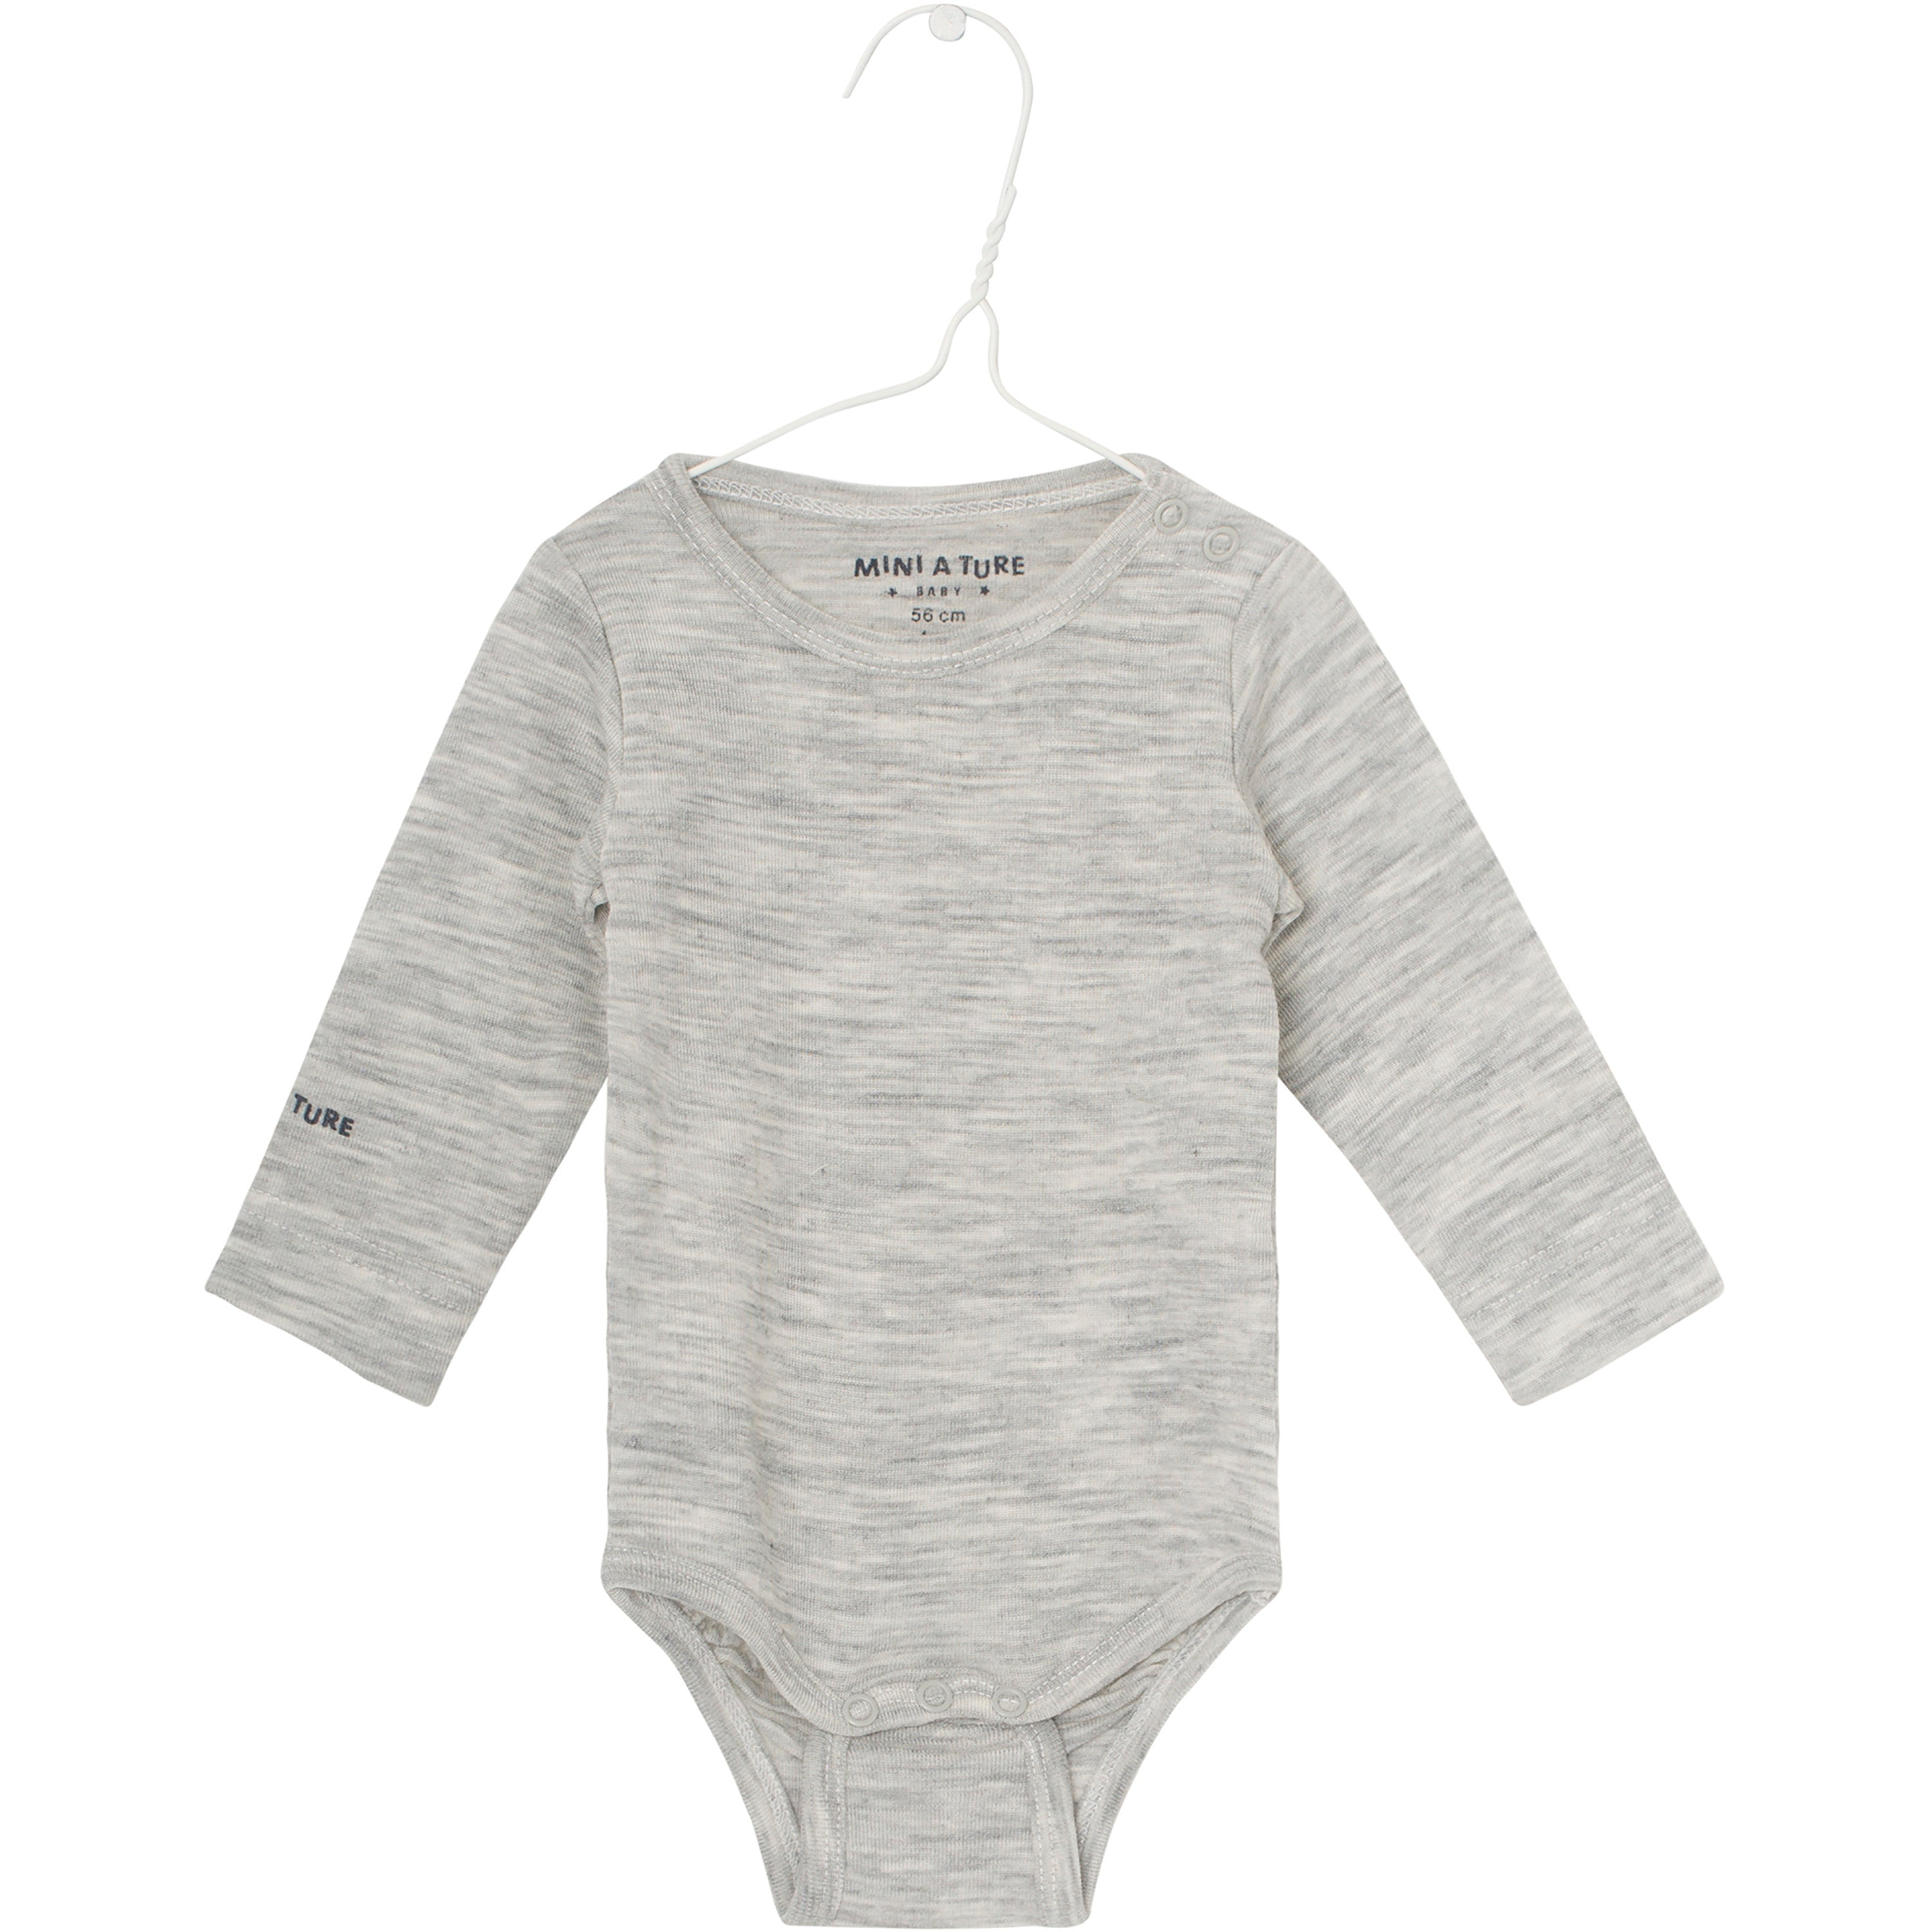 Mini A Ture - Body LS, Ellis - Light Grey Melange (Basis)